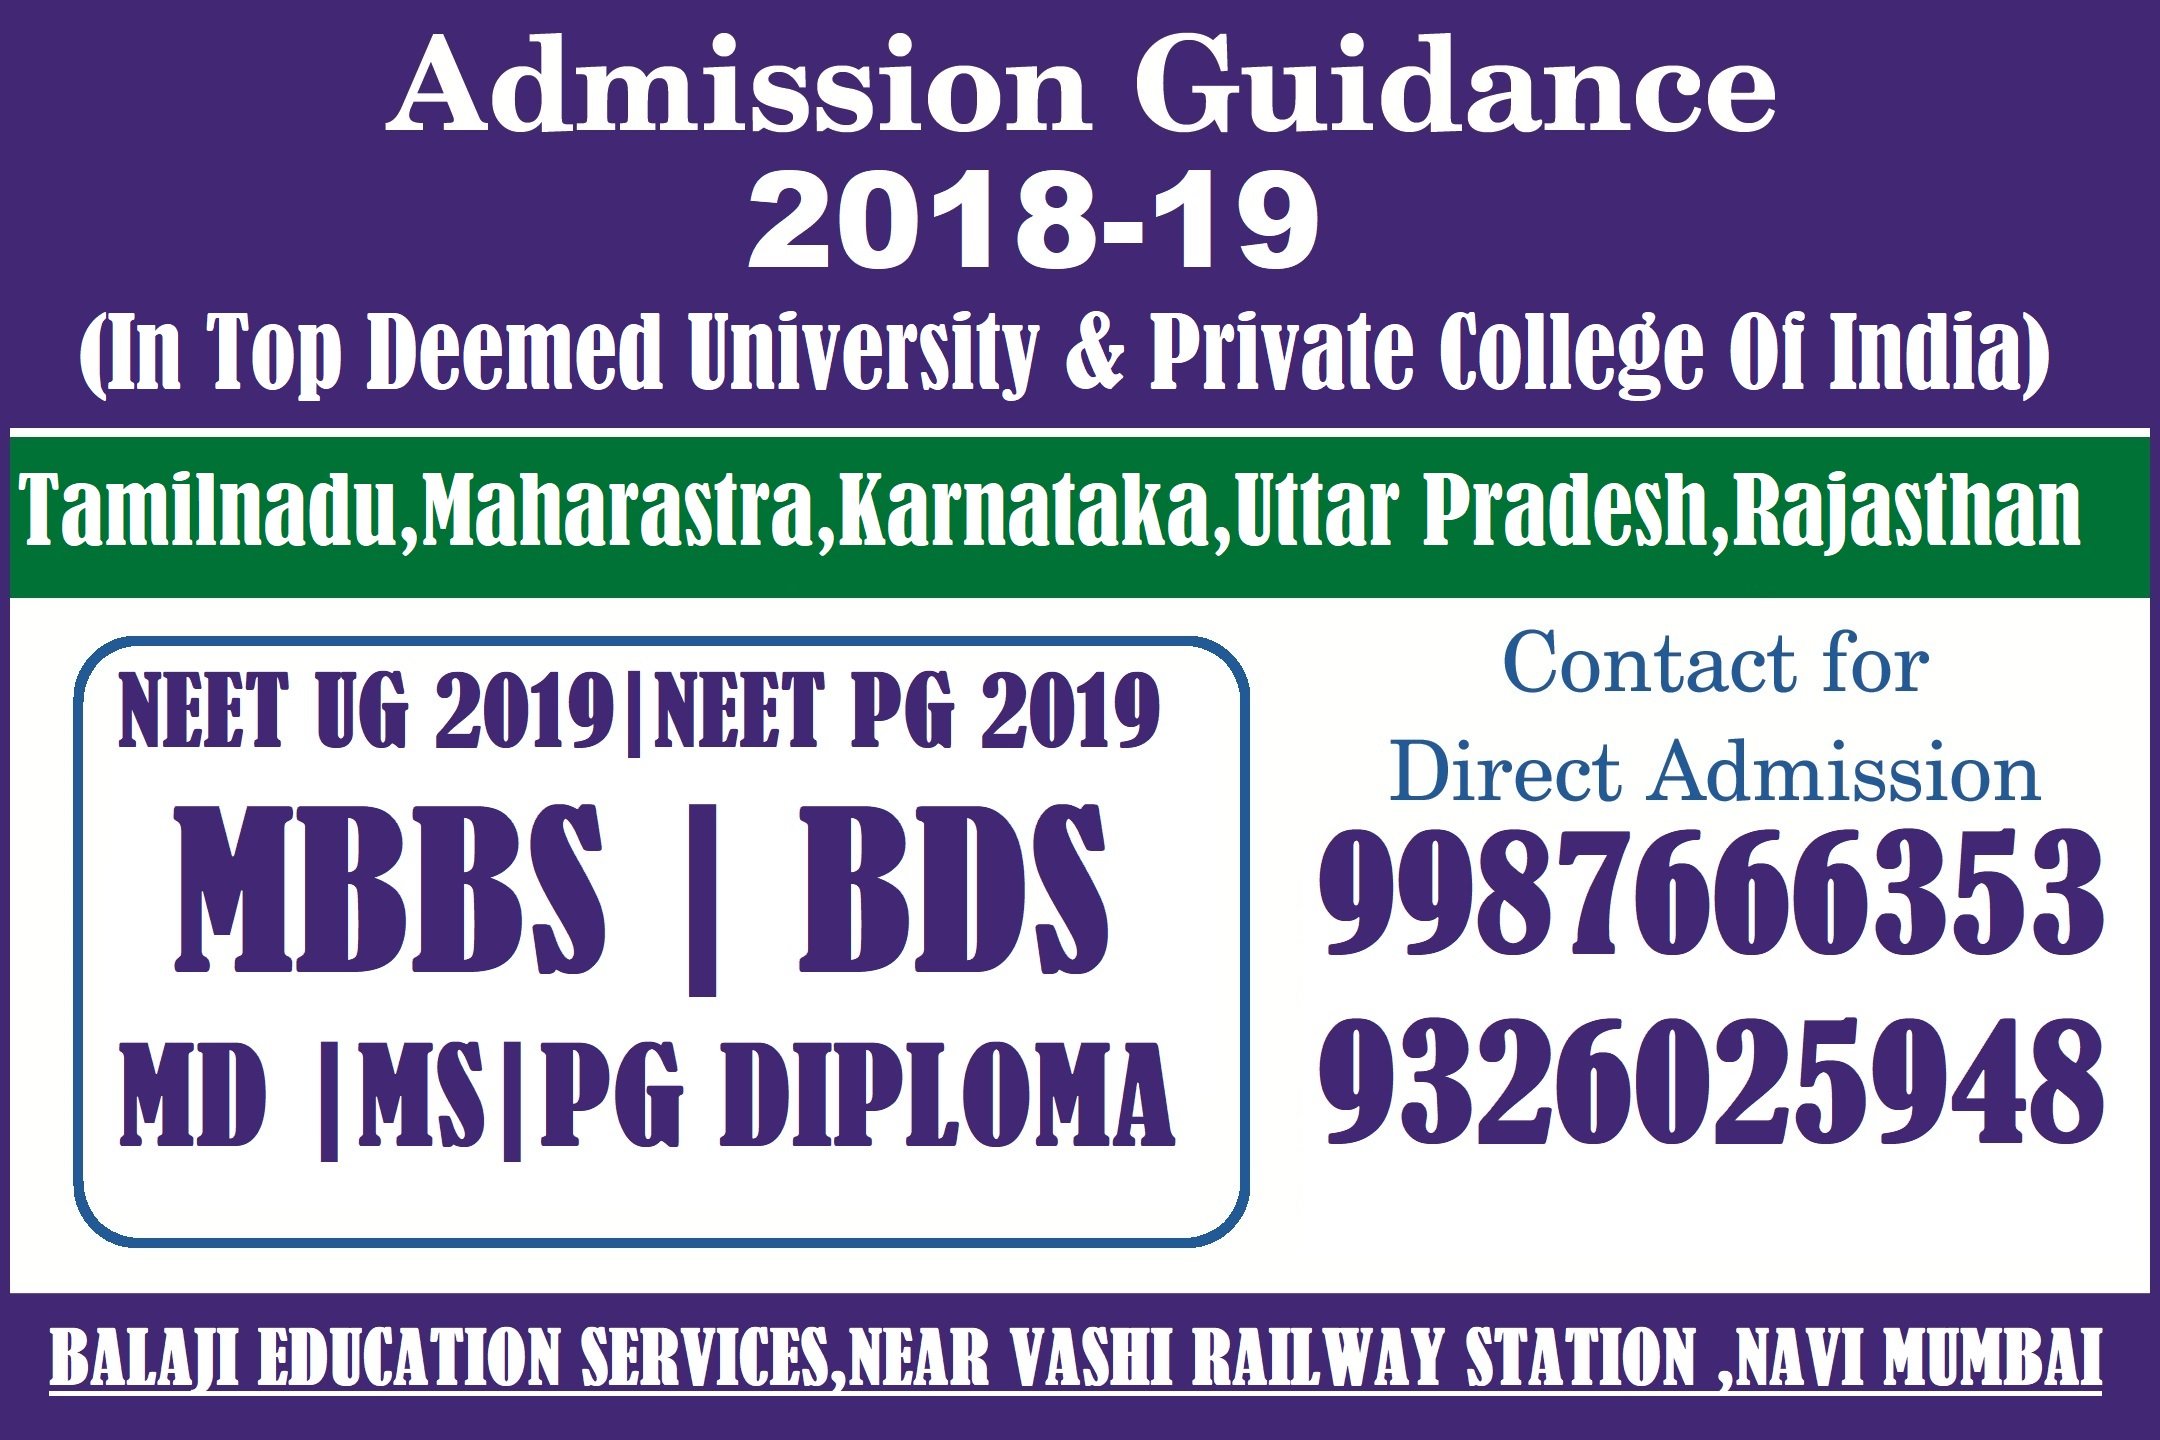 9326025948@DIRECT ADMISSION IN KRISHNA INSTITUTE OF MEDICAL SCIENCE,KARAD